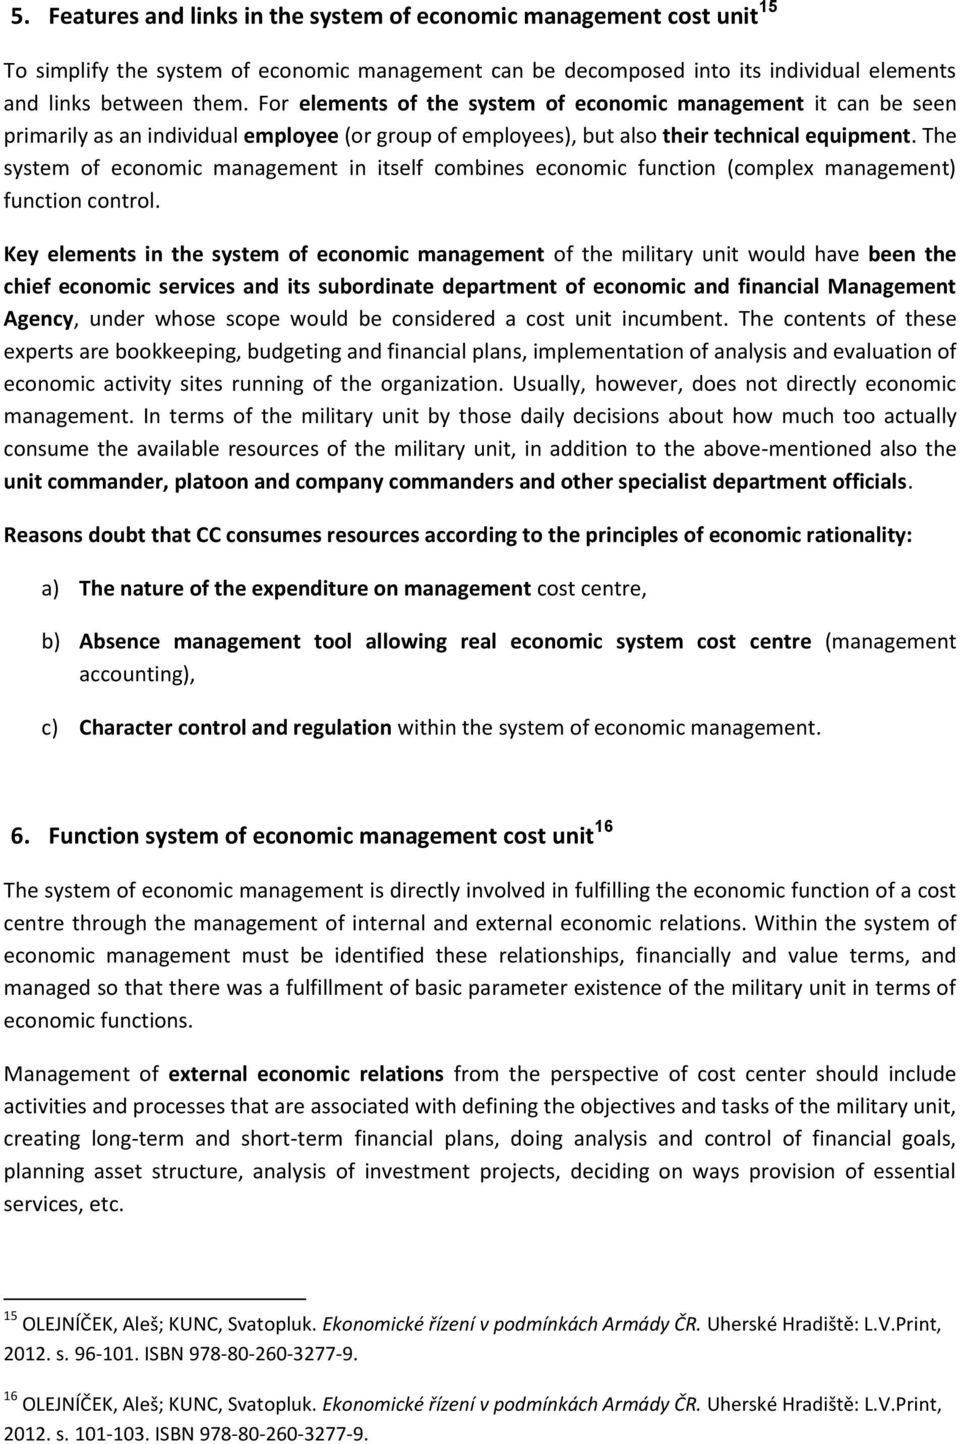 The system of economic management in itself combines economic function (complex management) function control.